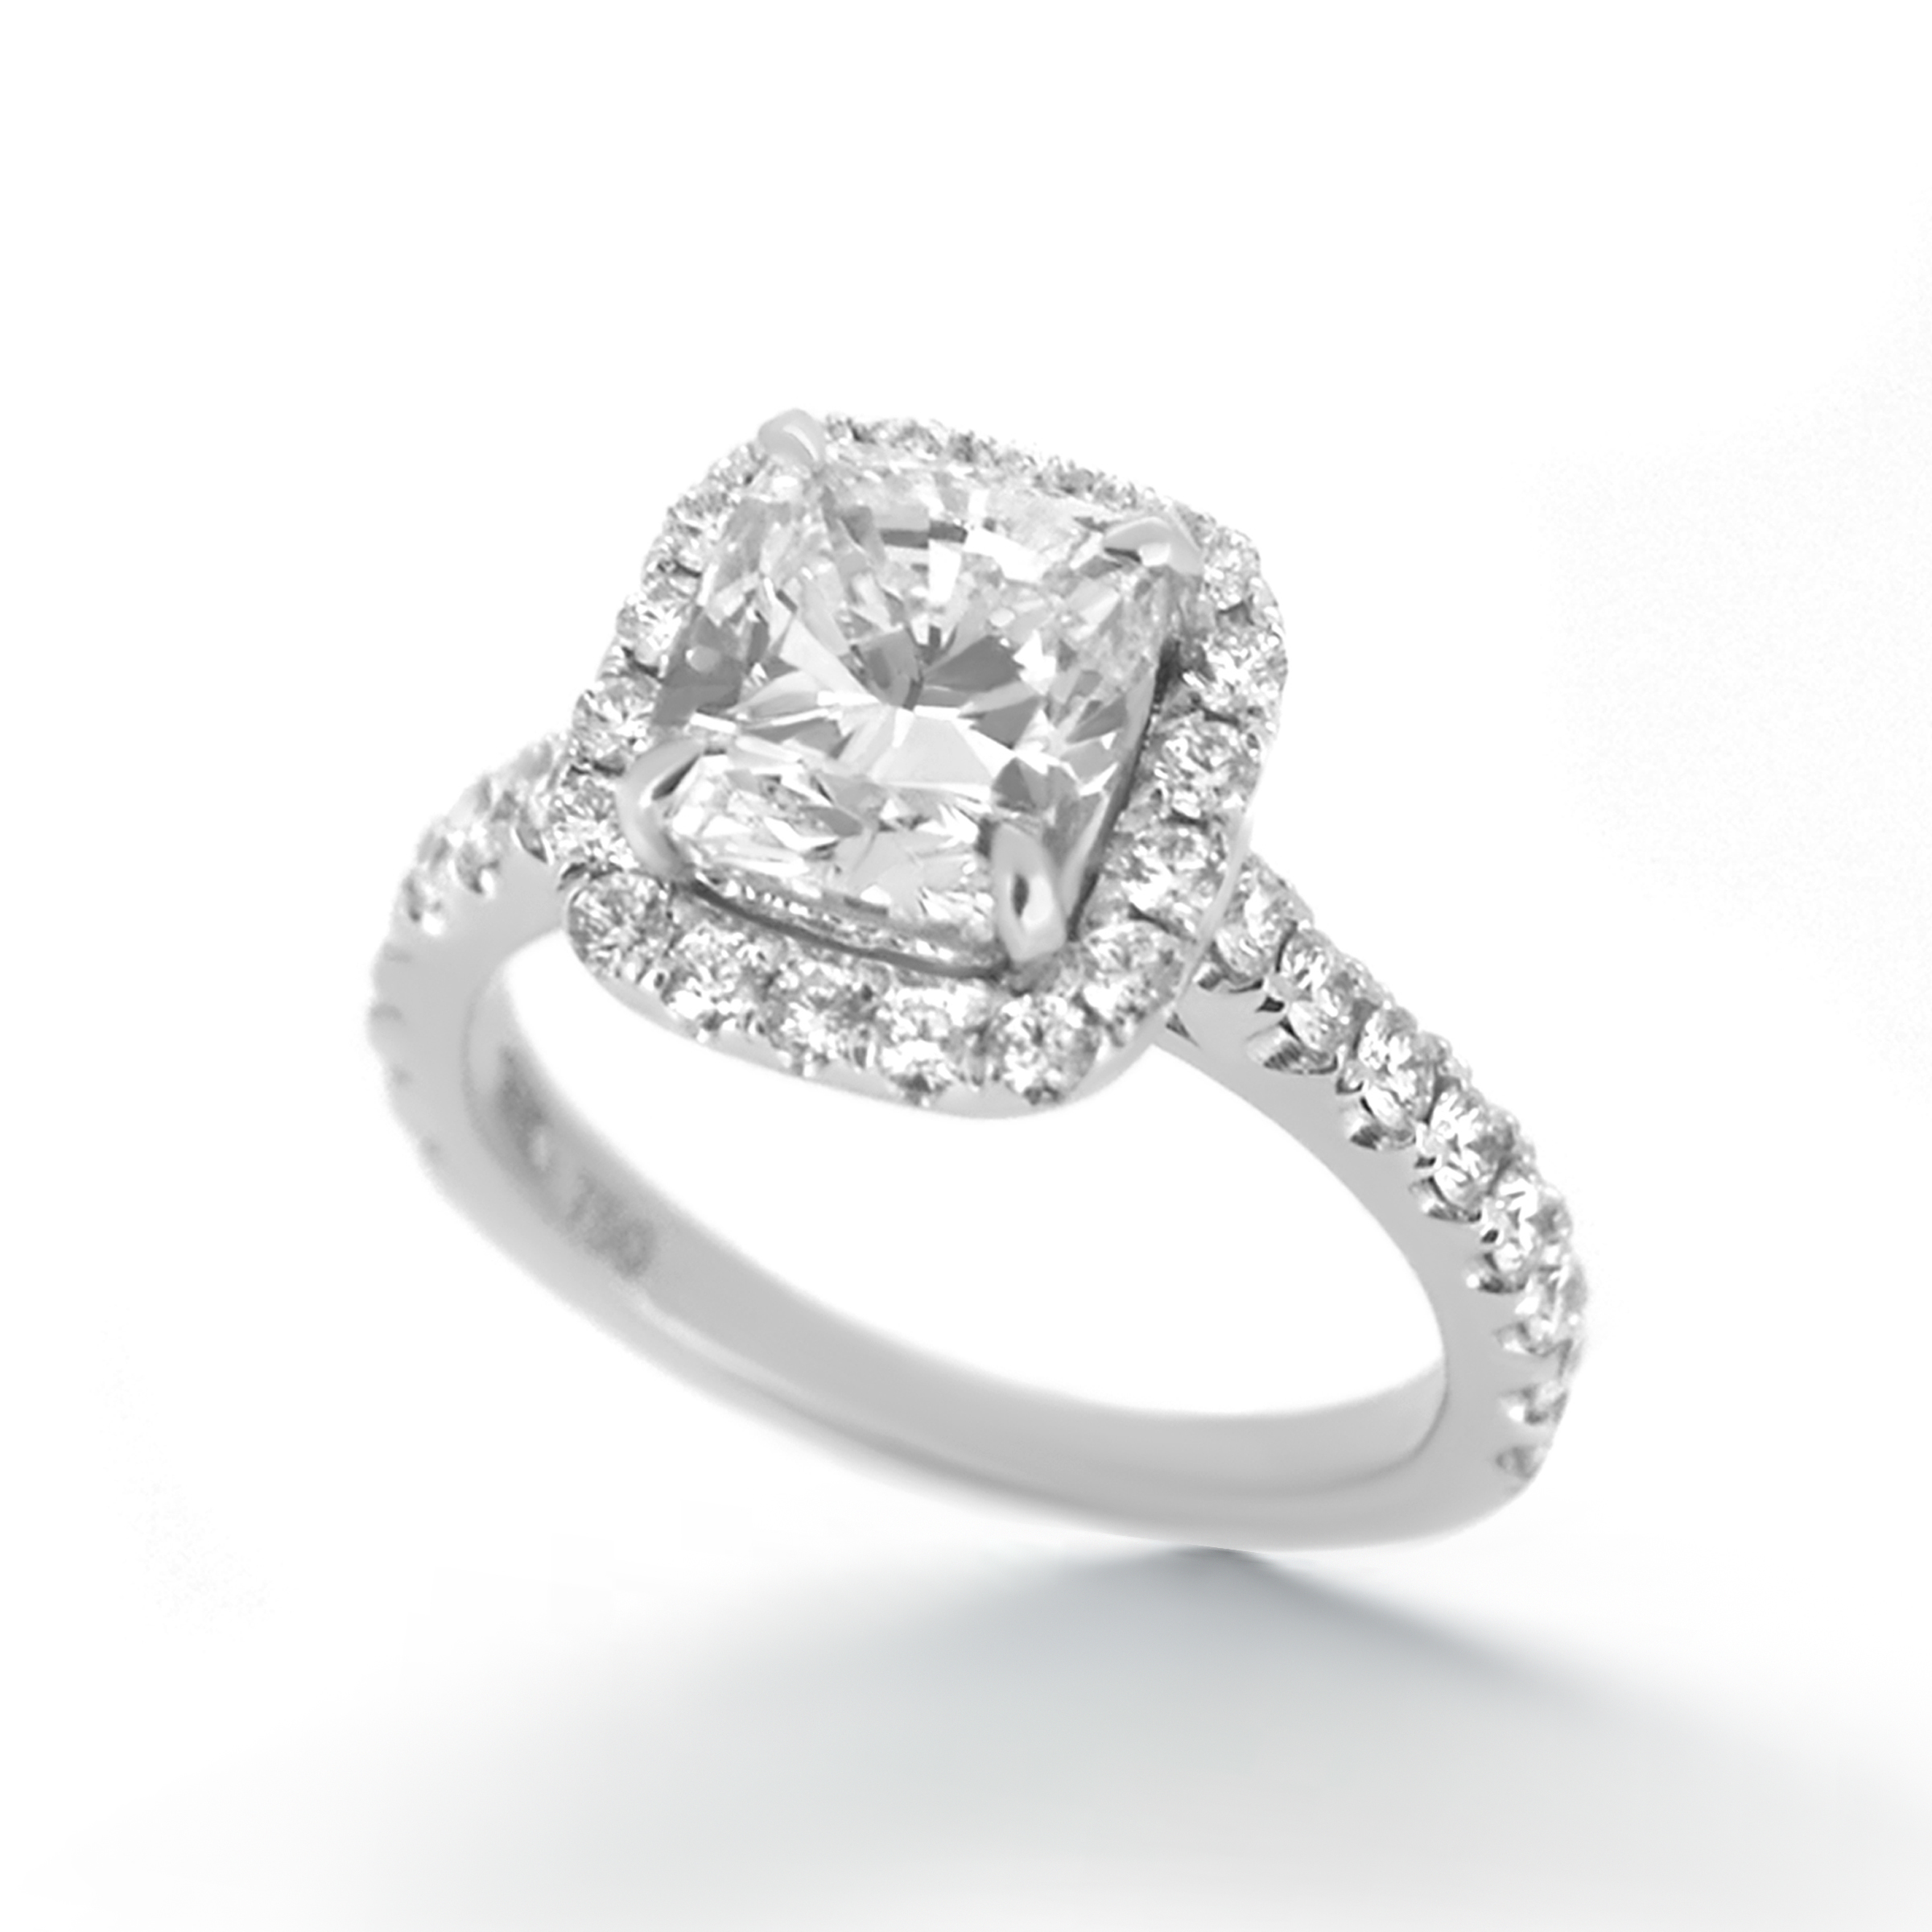 cushion cut diamond ring- haywards of hong kong